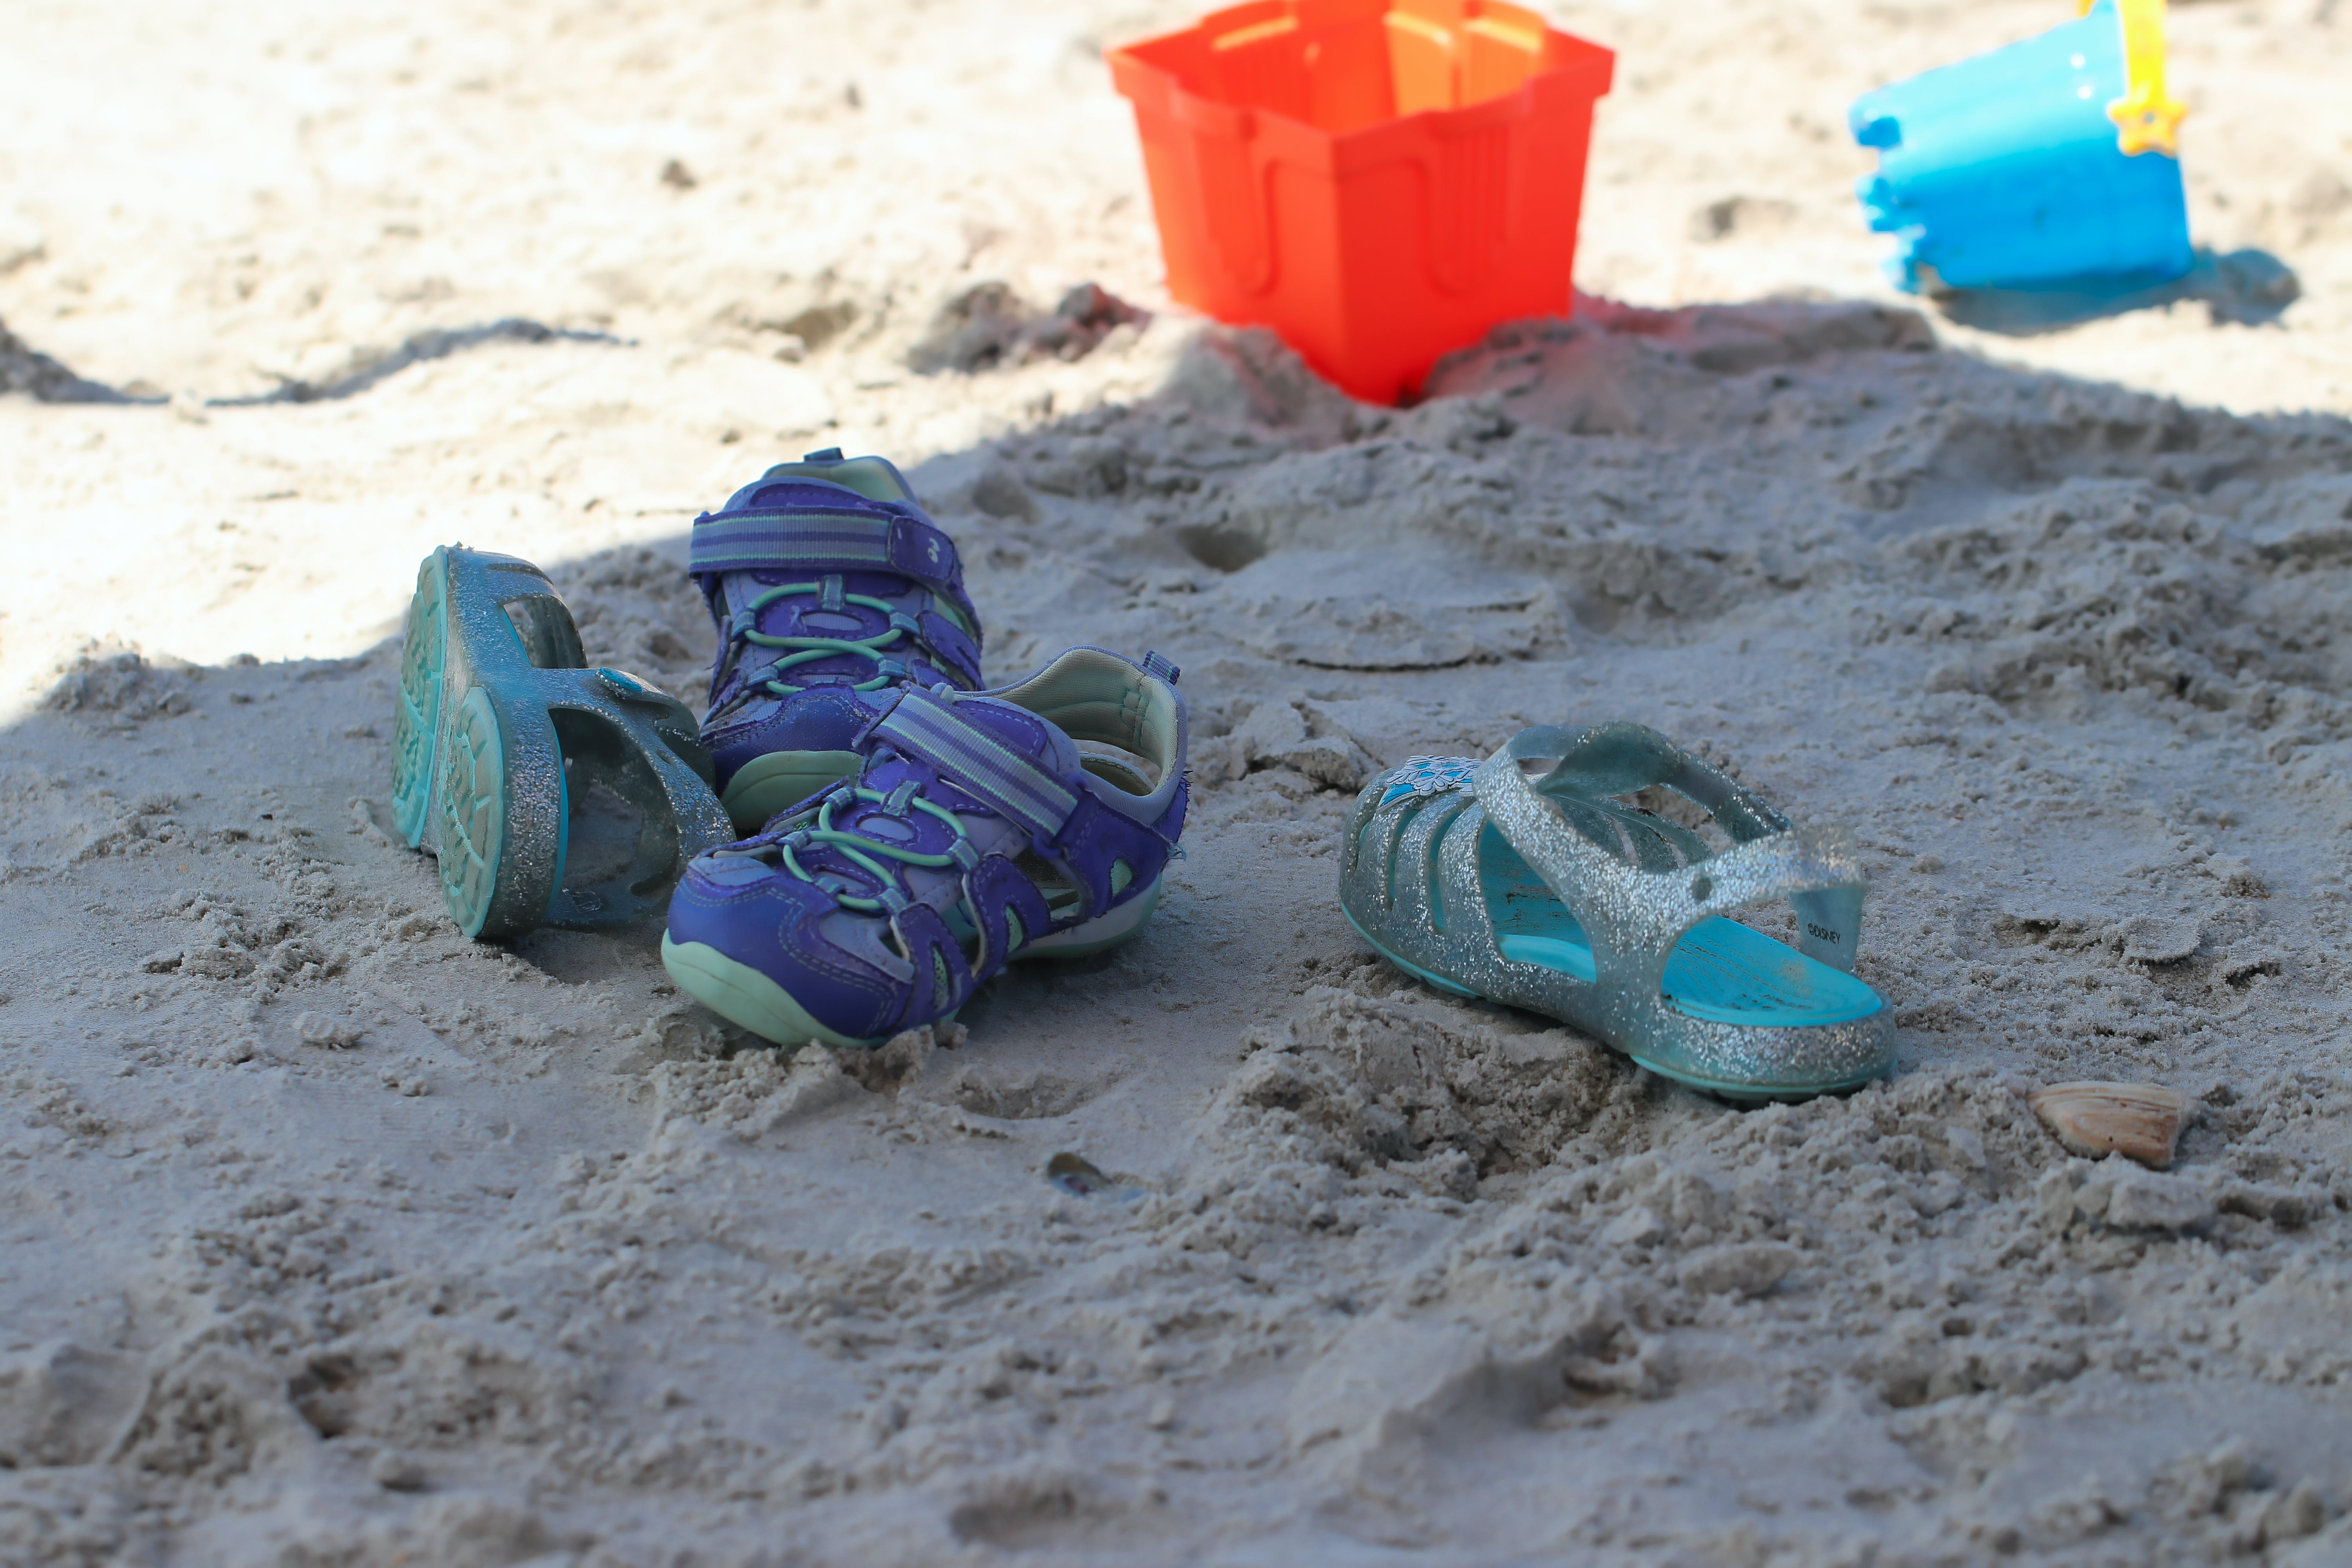 Free stock photo of beach, children's shoes, sand toys